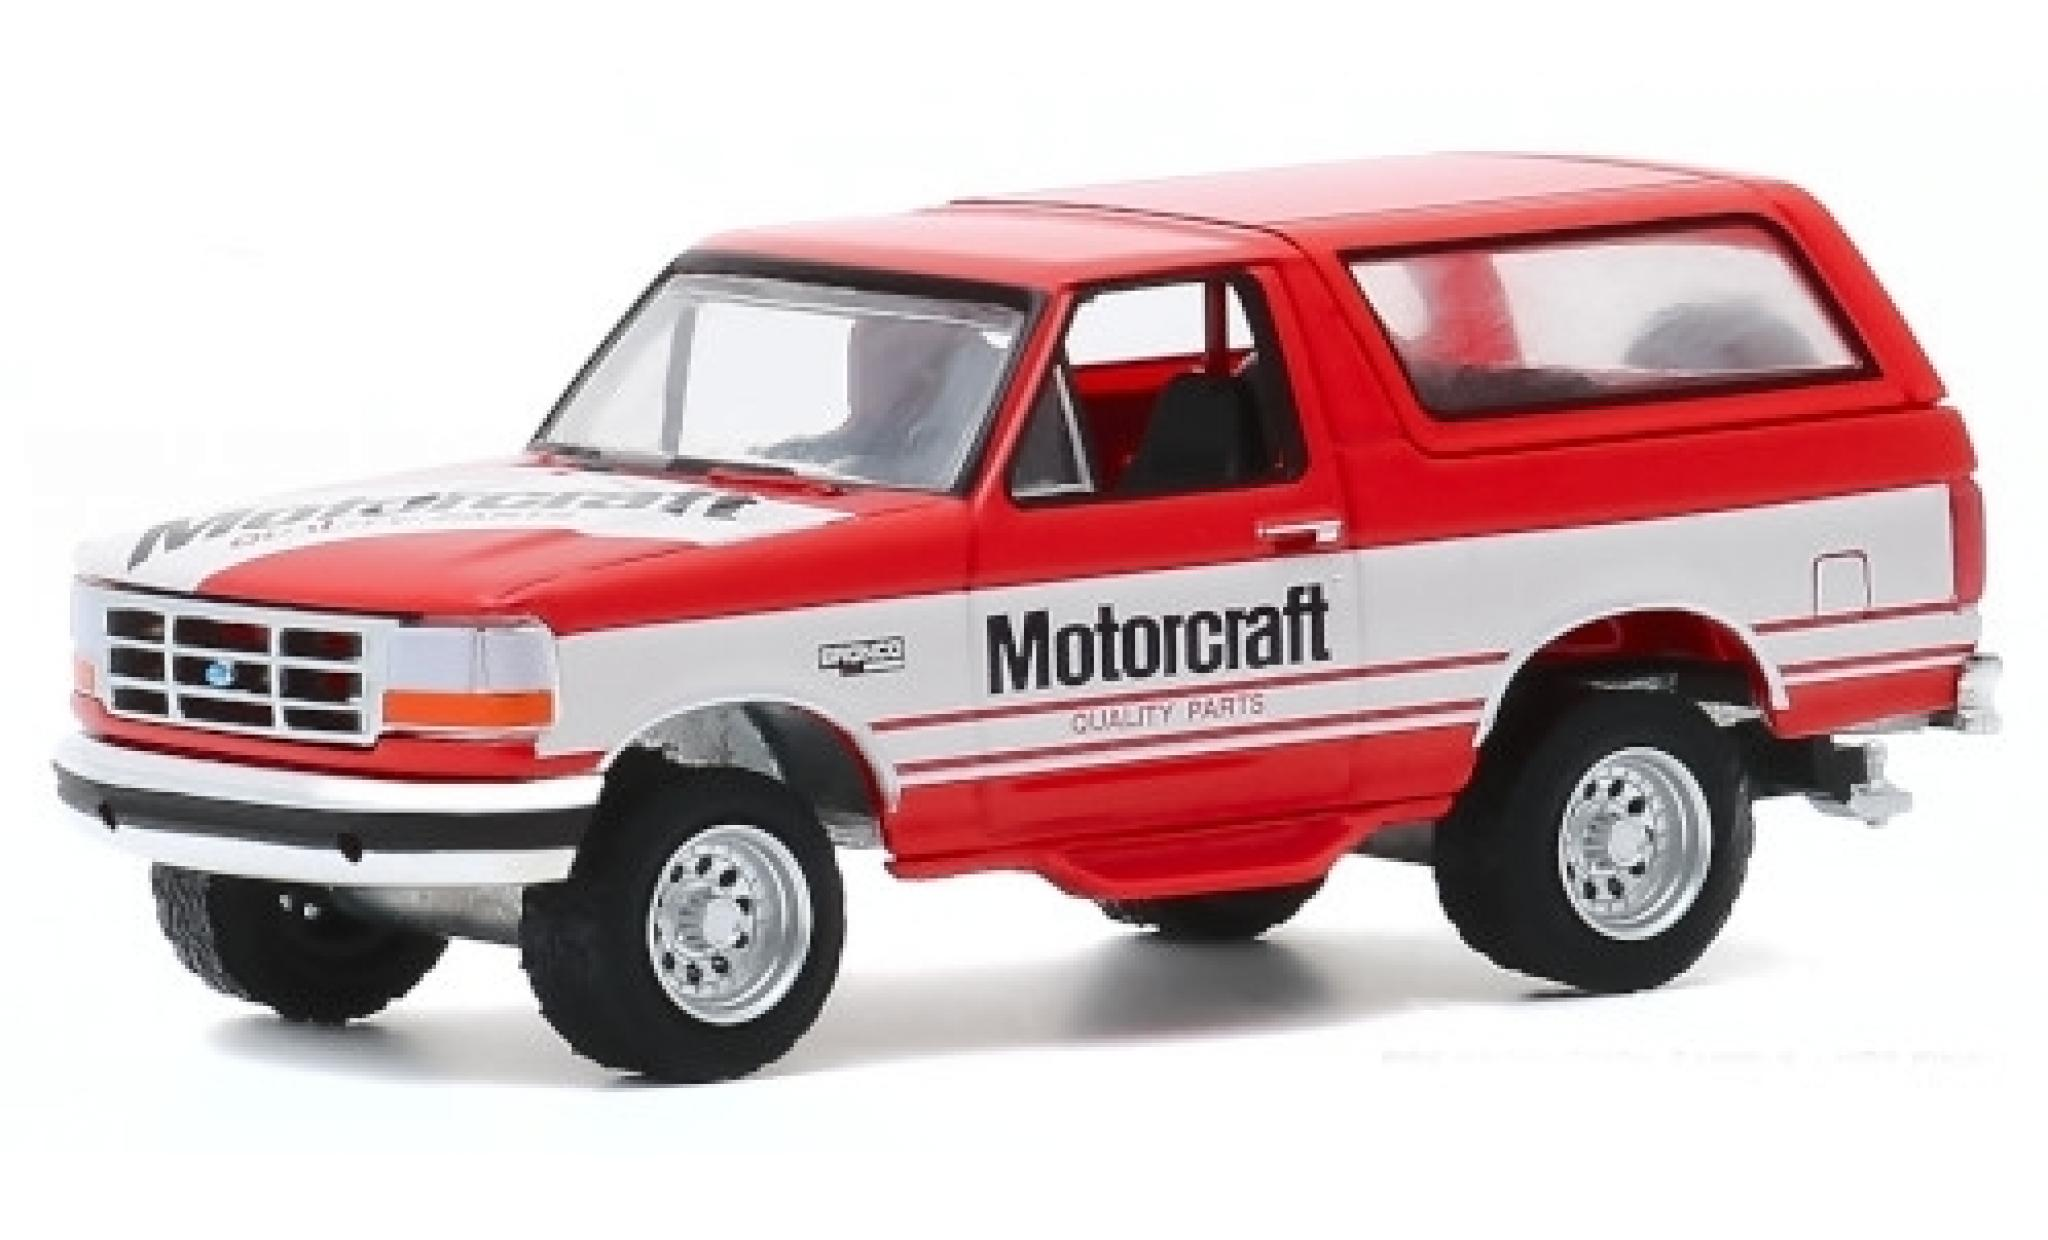 Ford Bronco 1/64 Greenlight Motorcraft Quality Parts 1994